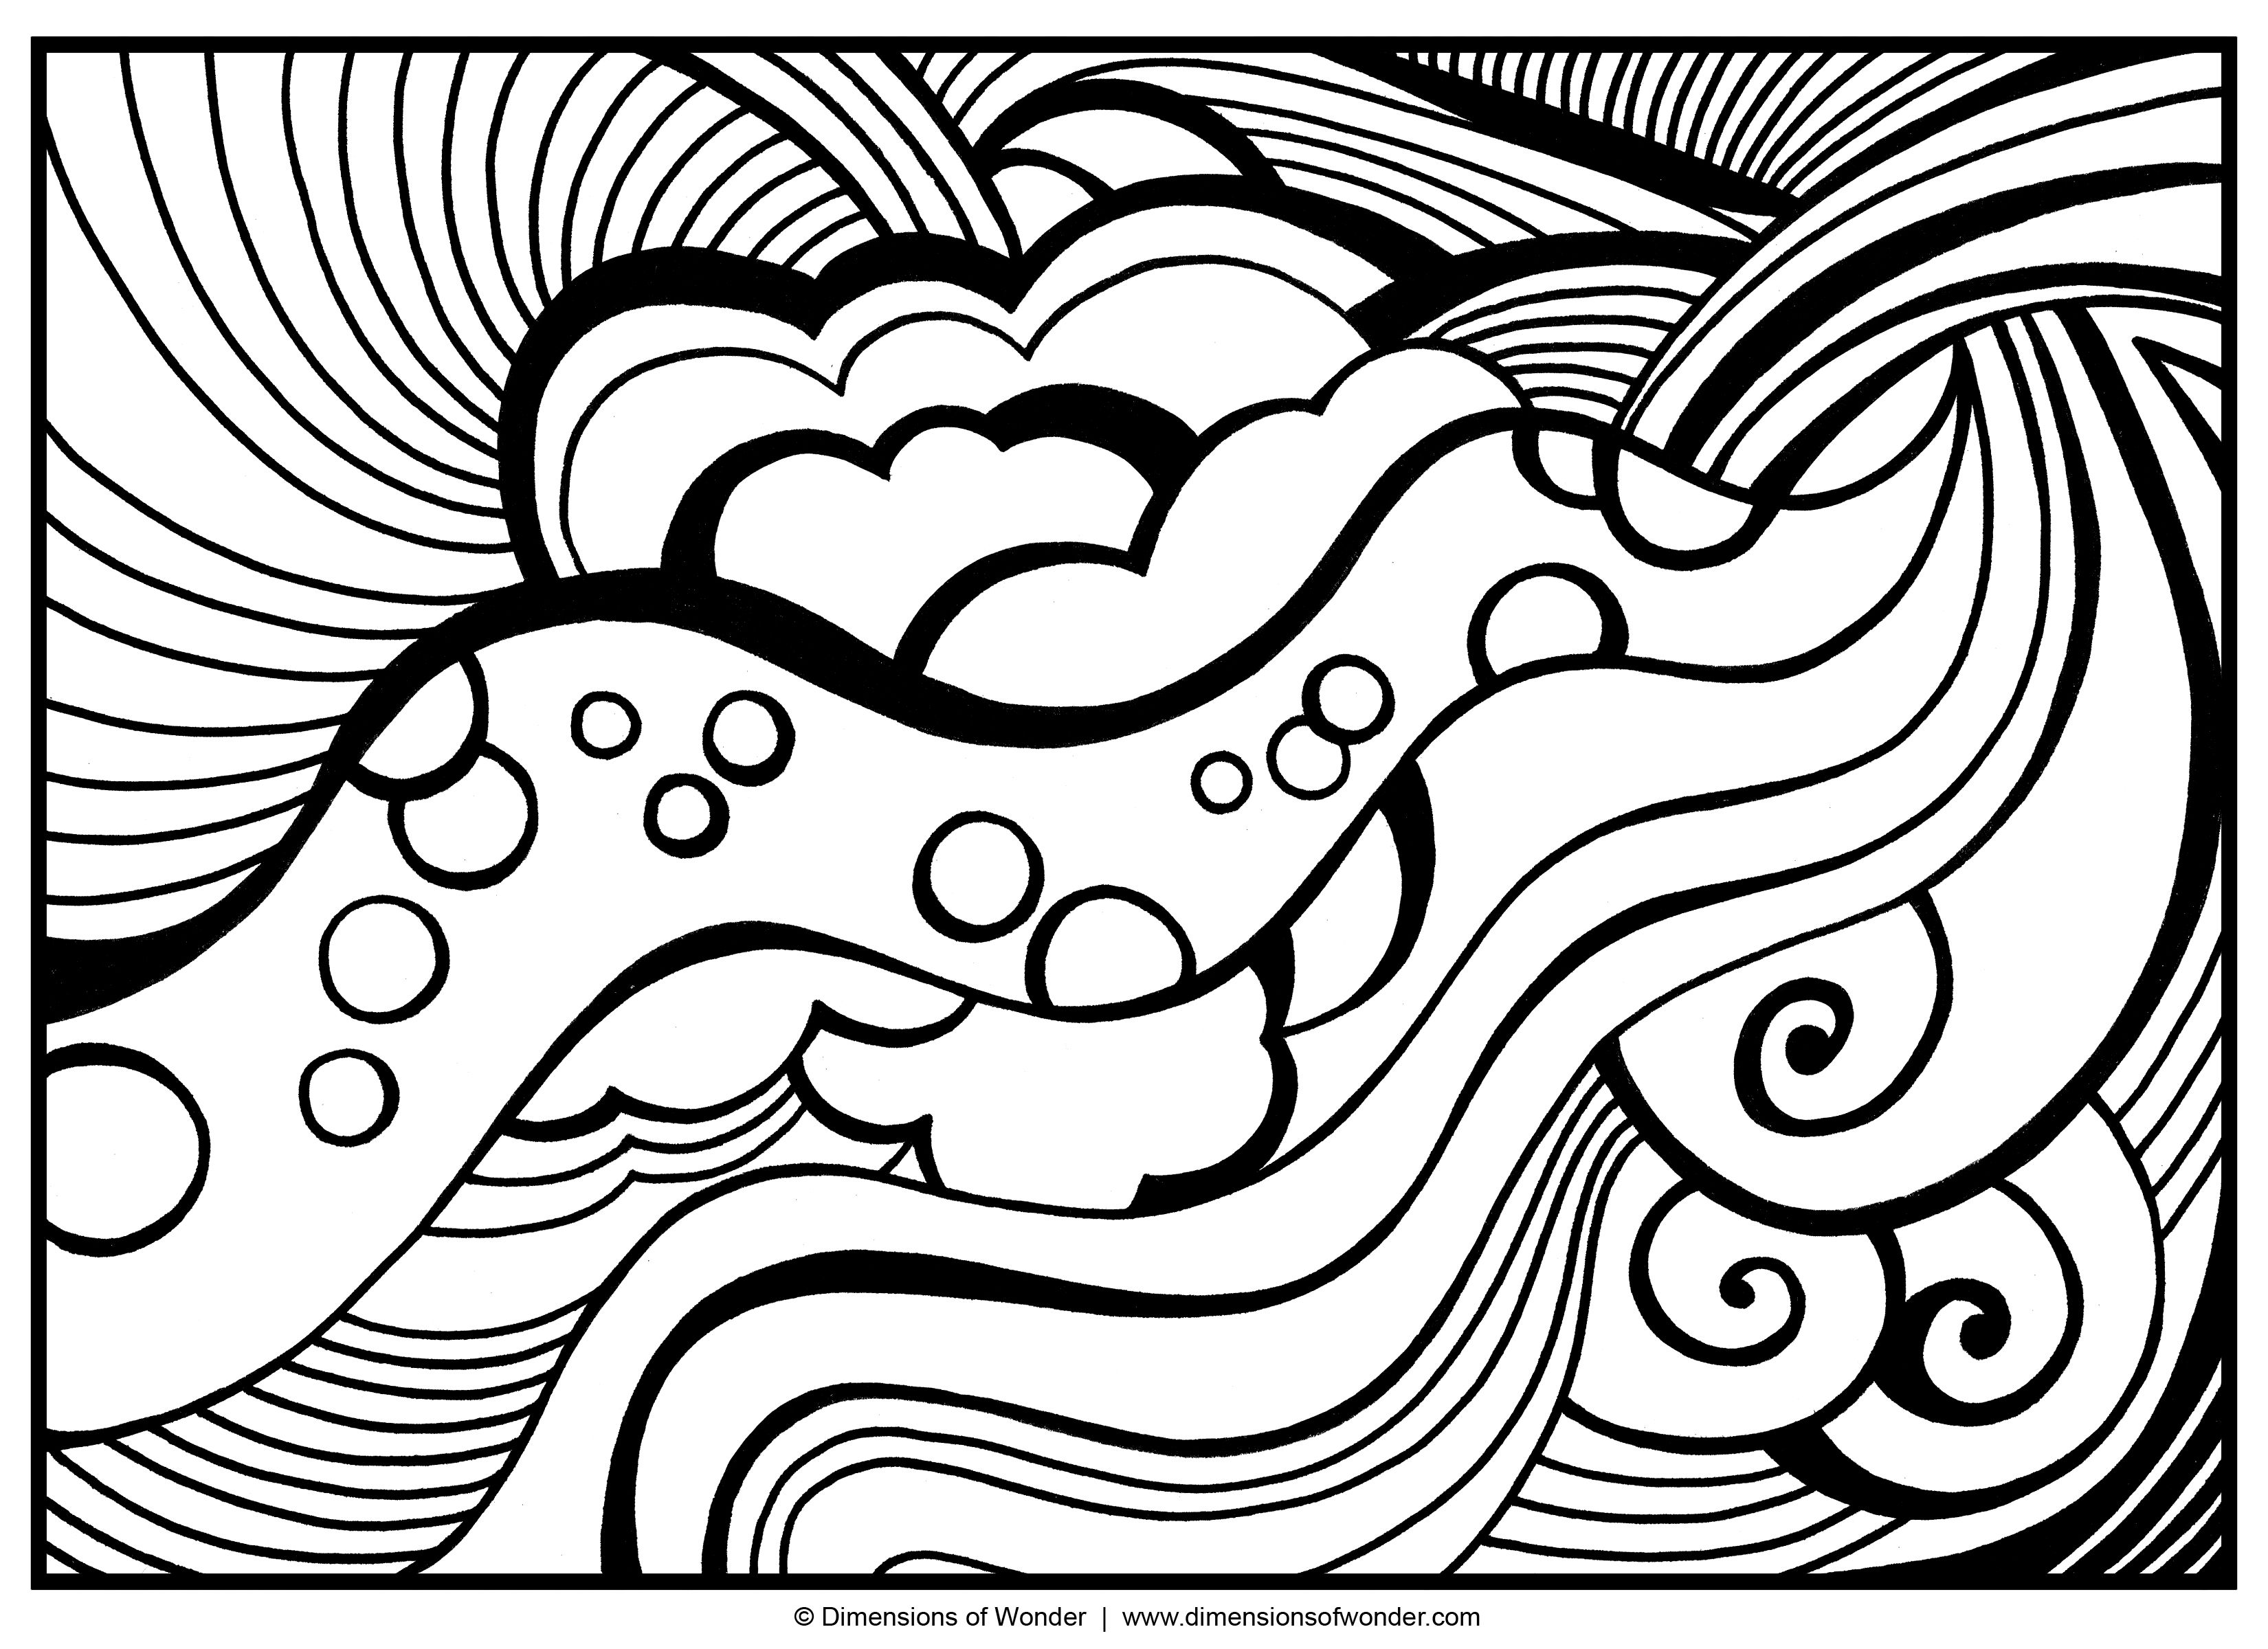 large coloring pages for adults - photo#12